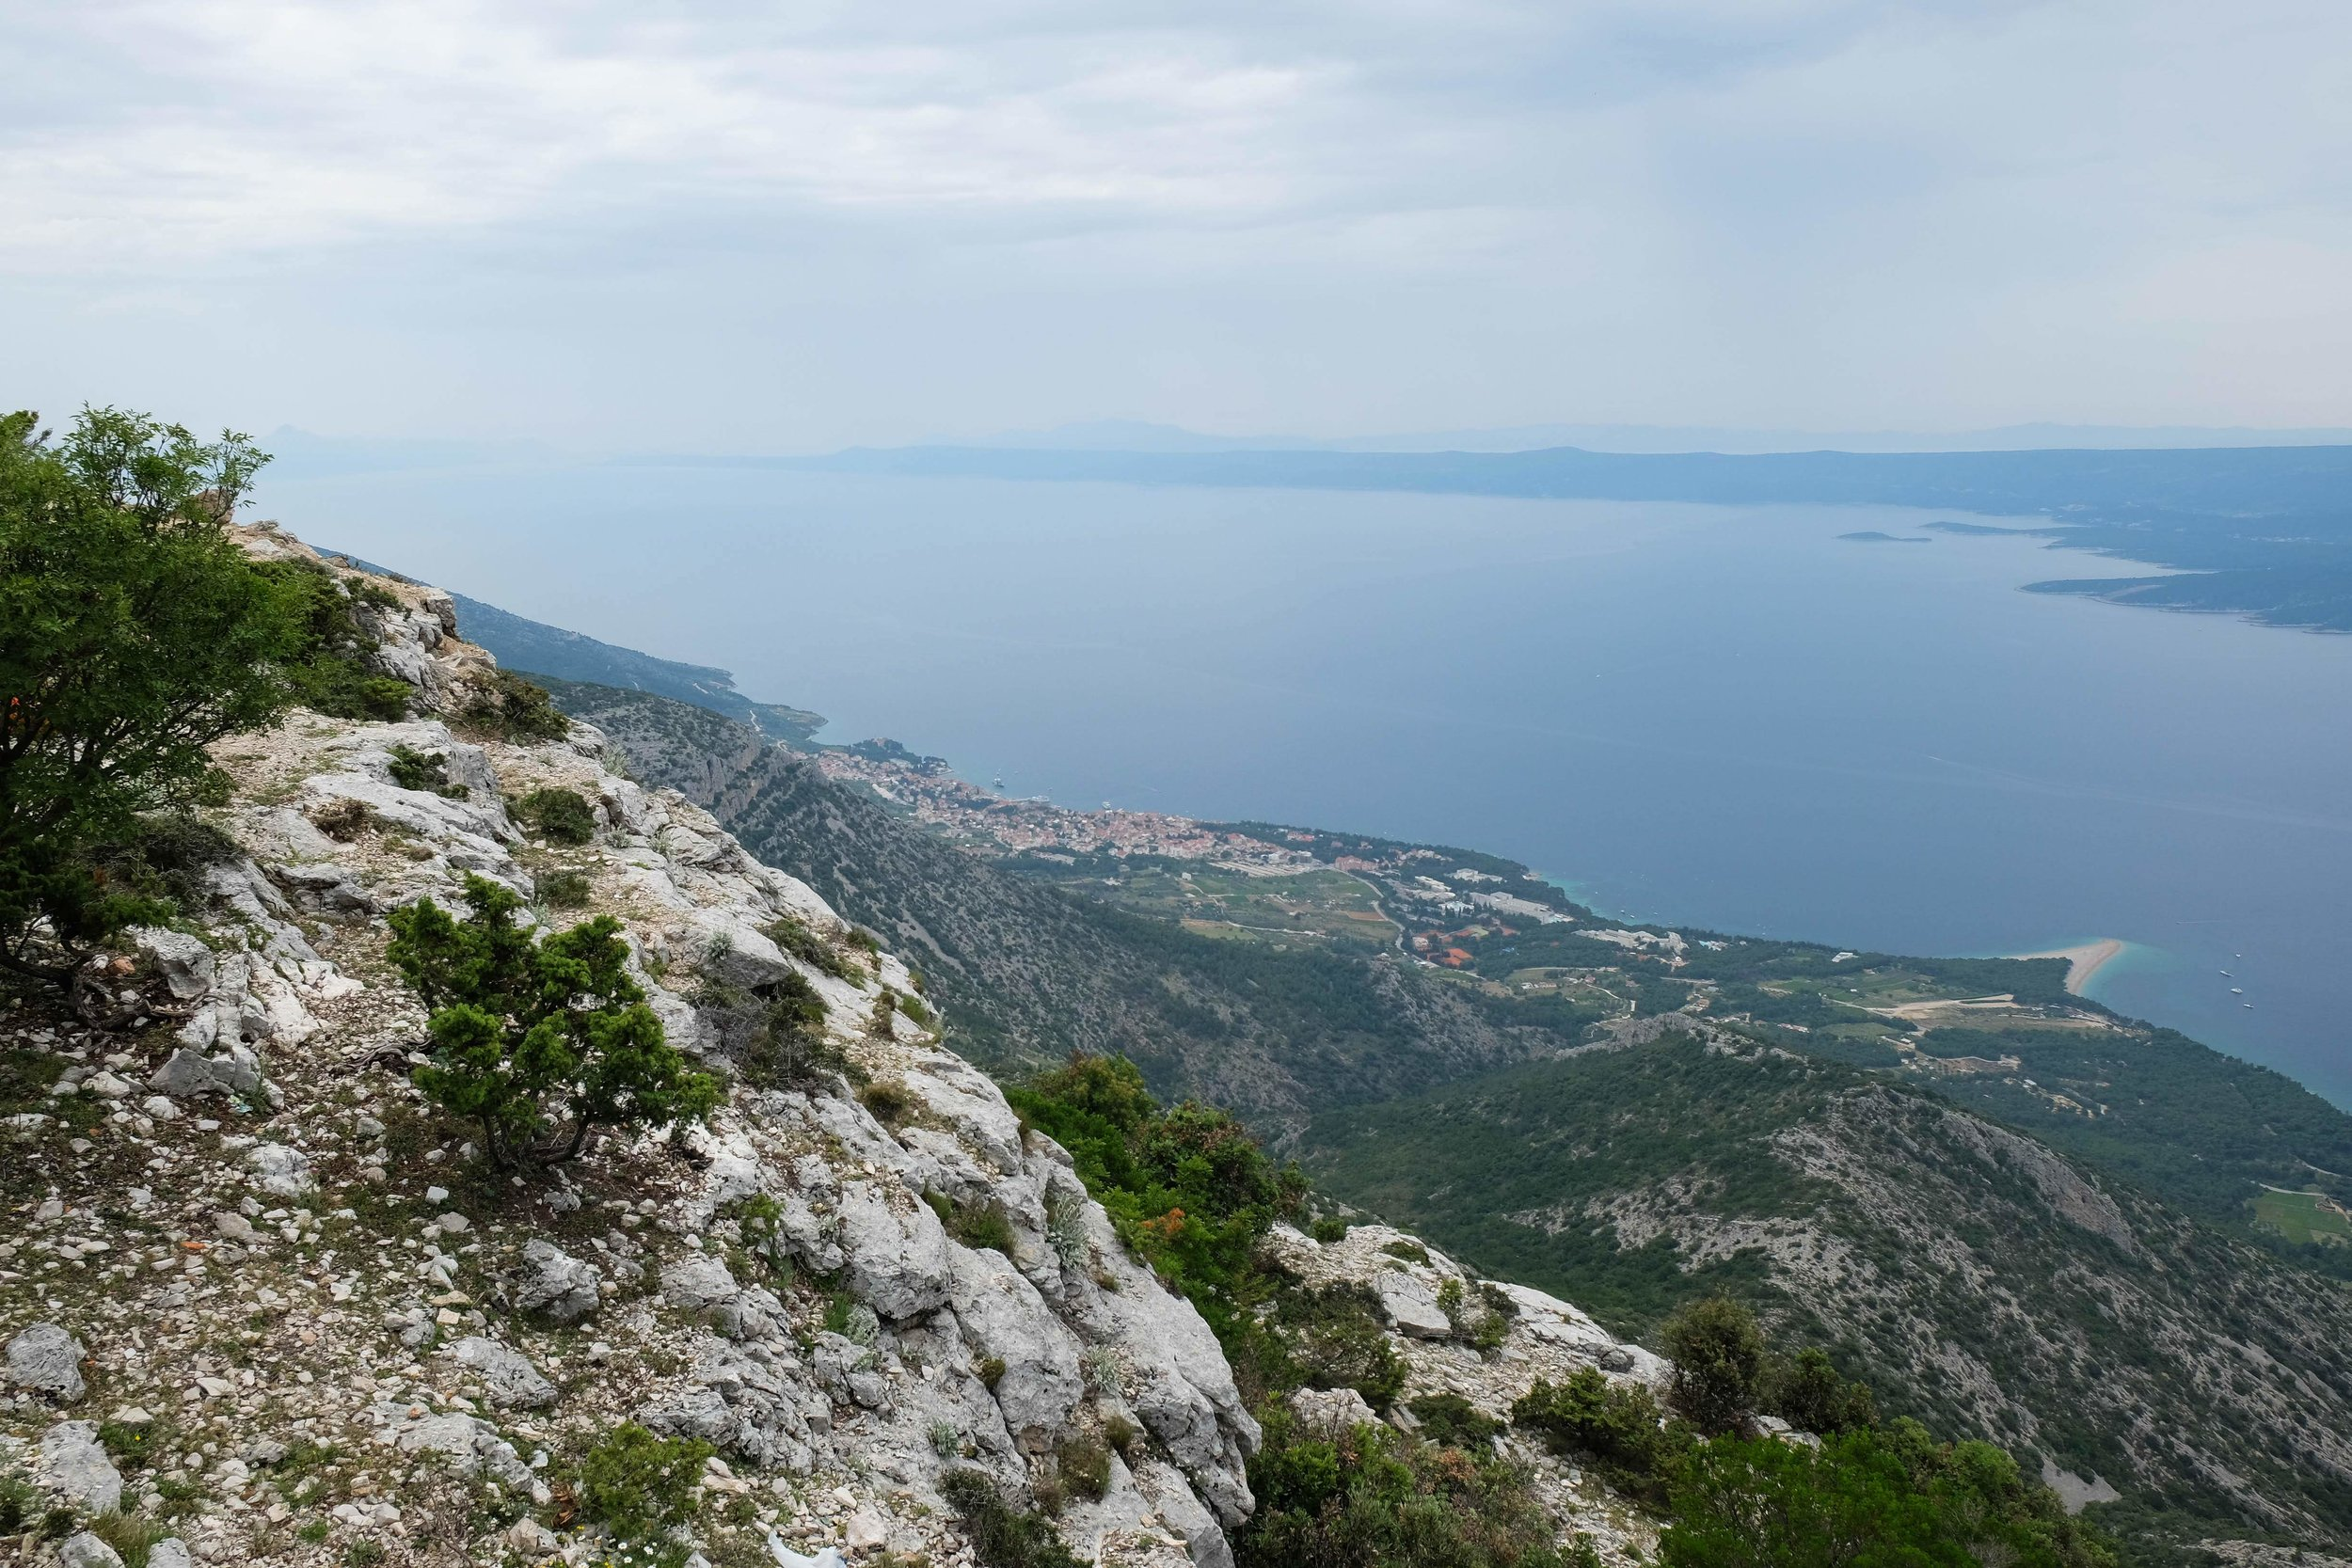 brac island, croatia. you can see bol beach in the distance which is where we spent the rest of the day